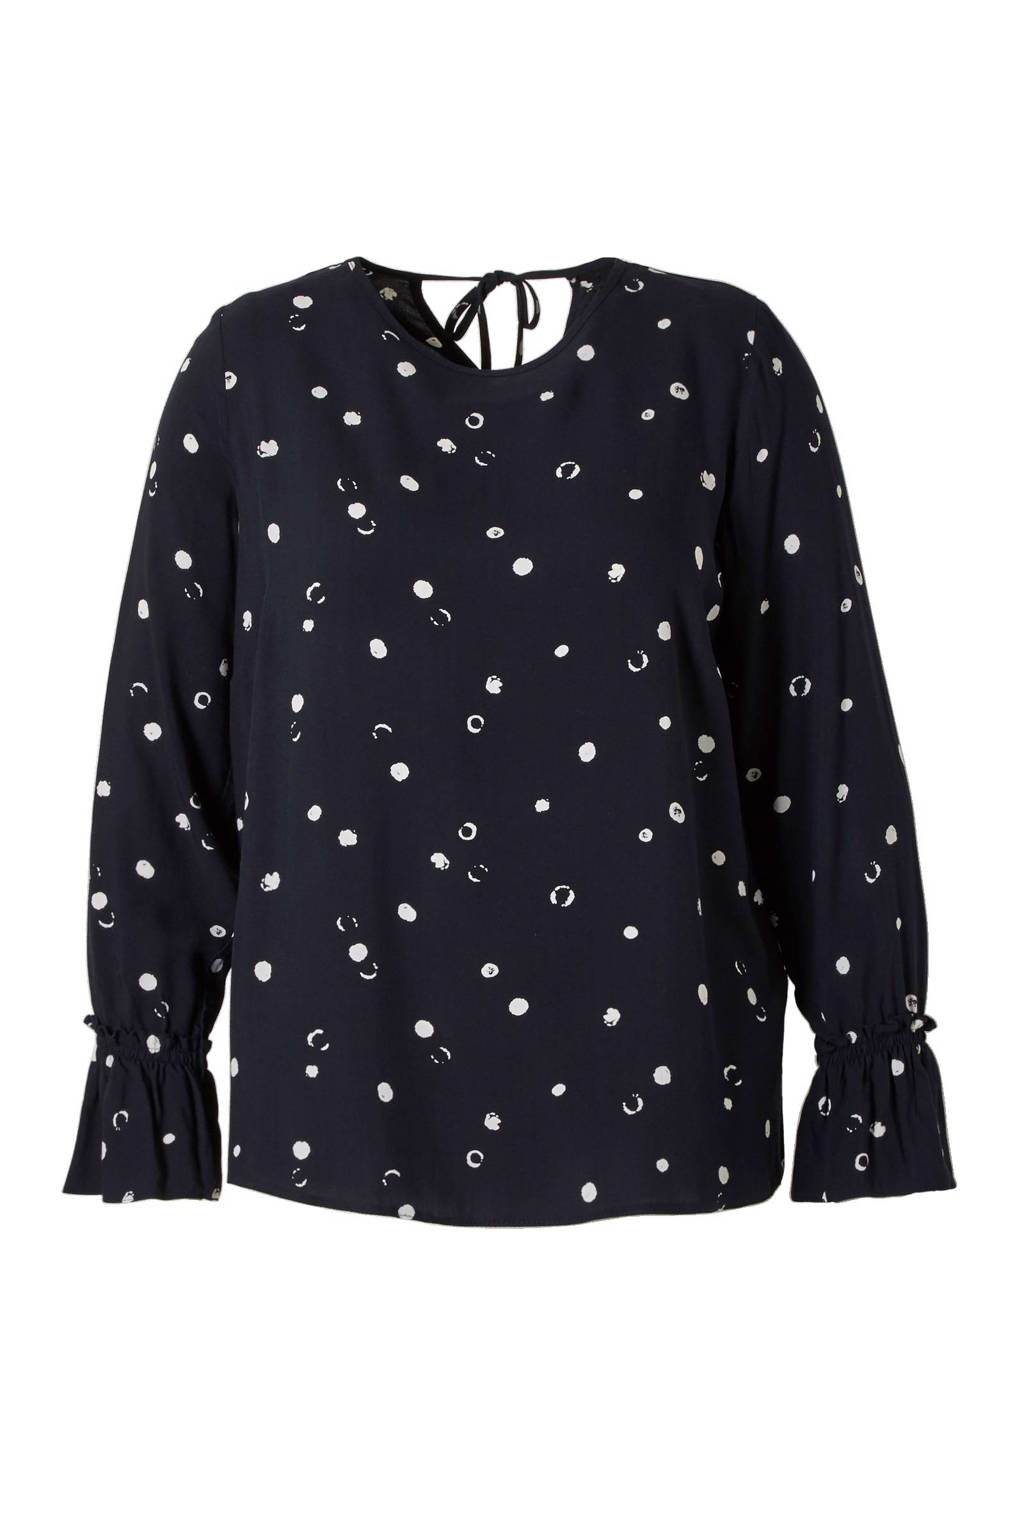 C&A Clockhouse top met stippen, Donkerblauw